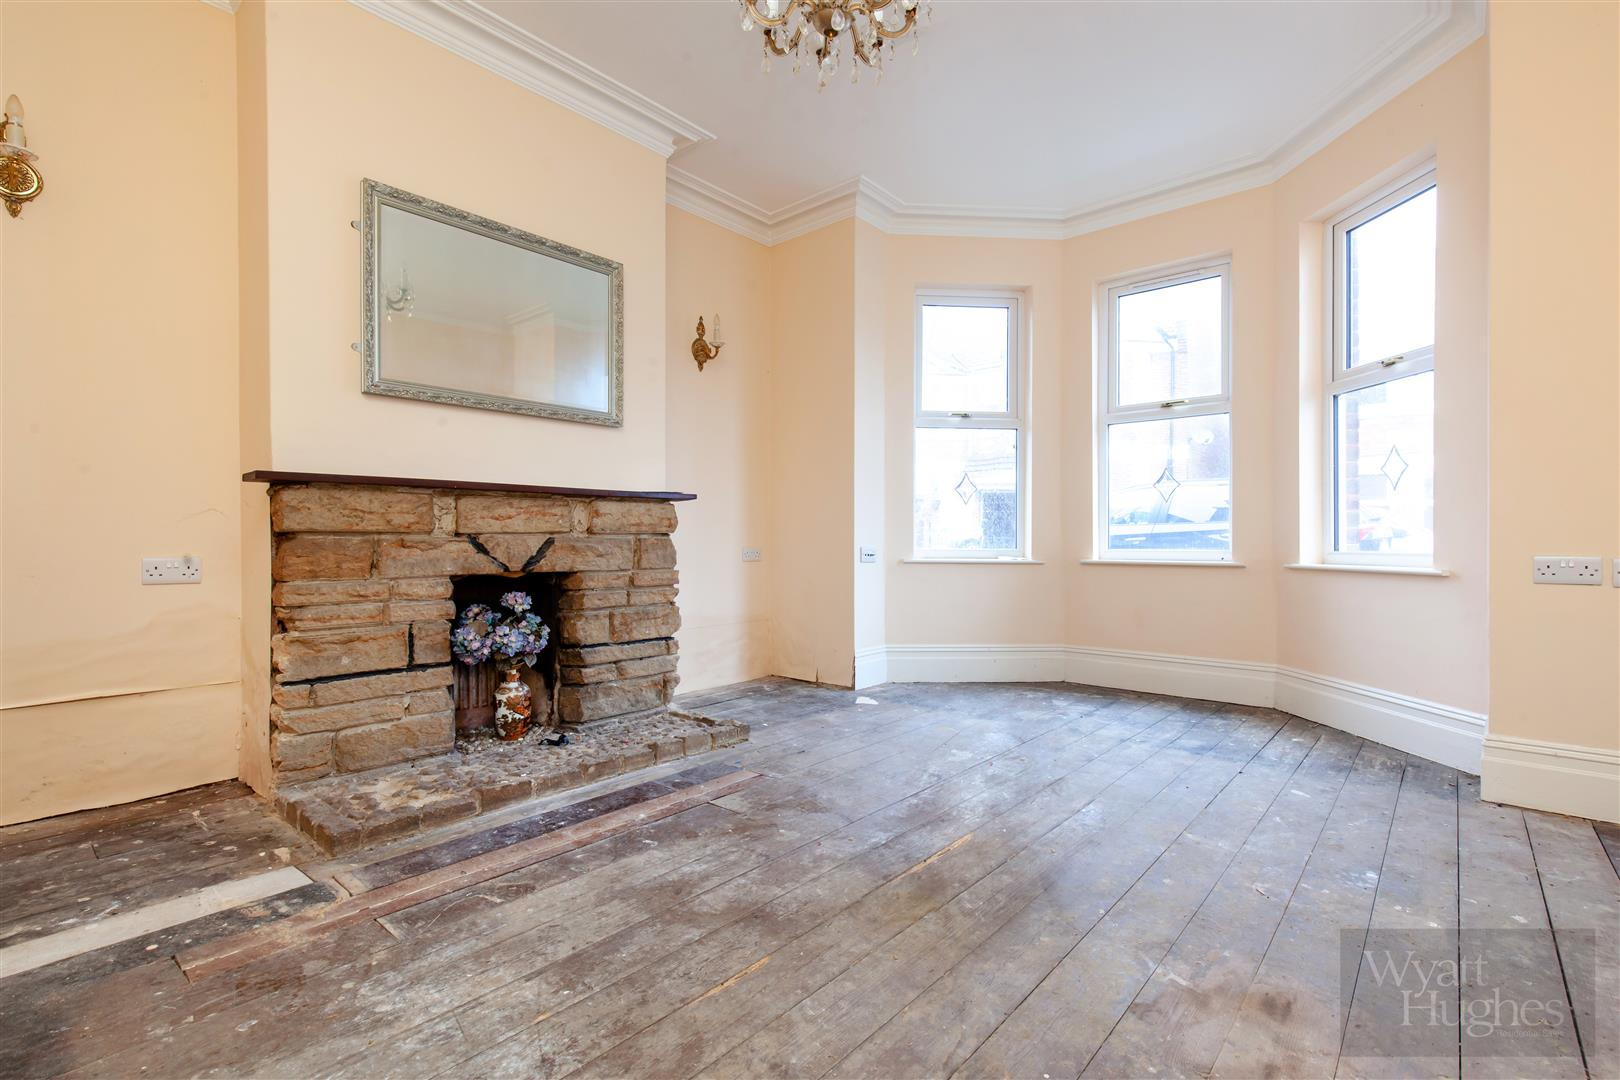 3 bed end-of-terrace-house for sale in Burry Road, St. Leonards-On-Sea 1